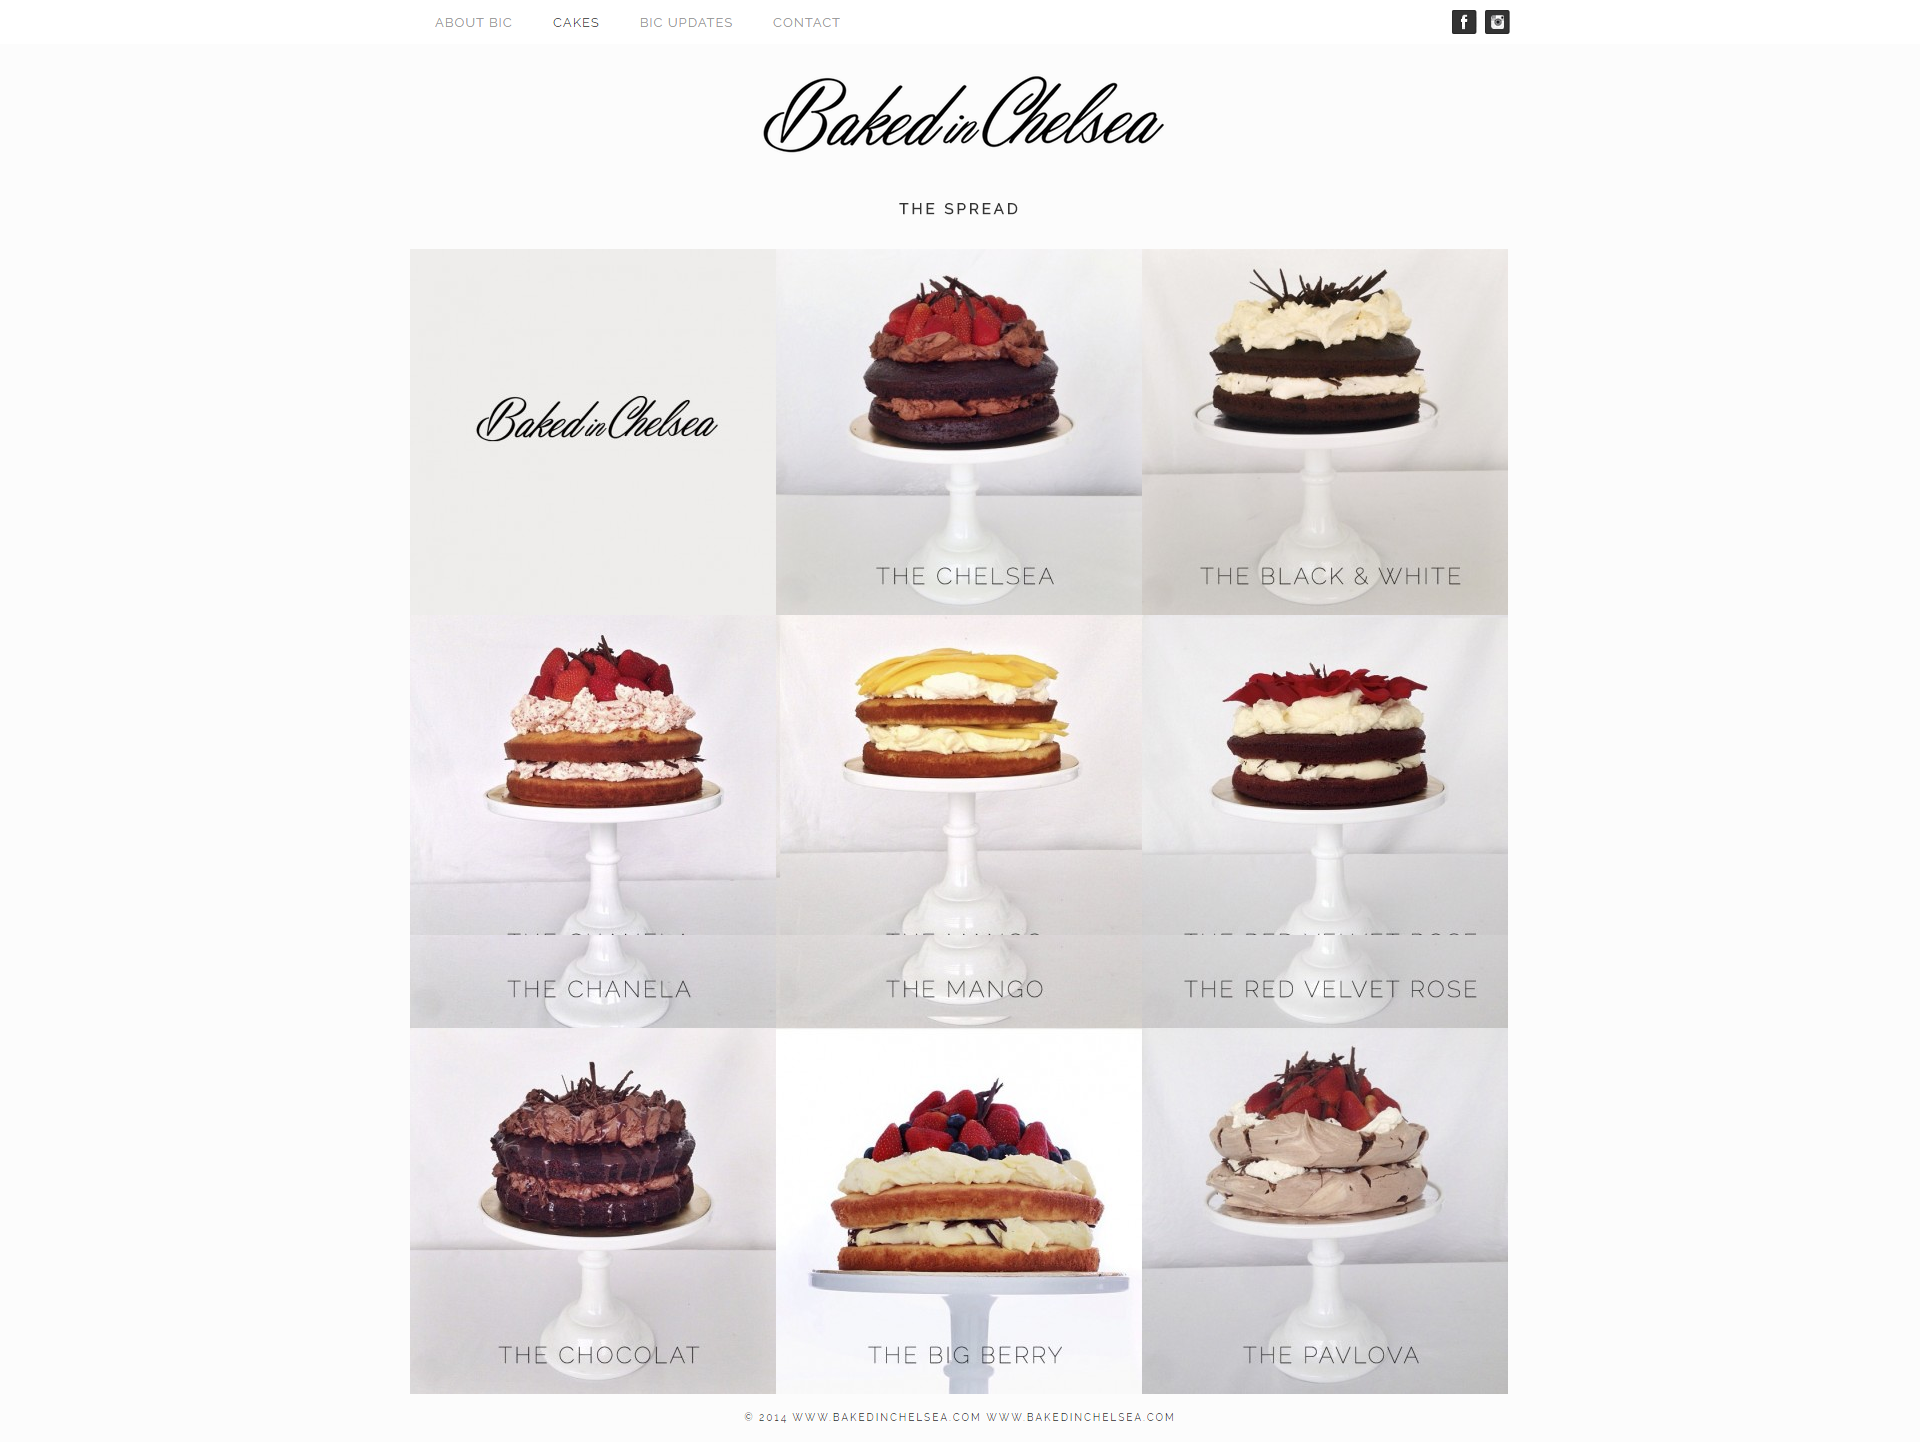 screencapture-bakedinchelsea-com-main-category-type-of-cakes-1461268599203